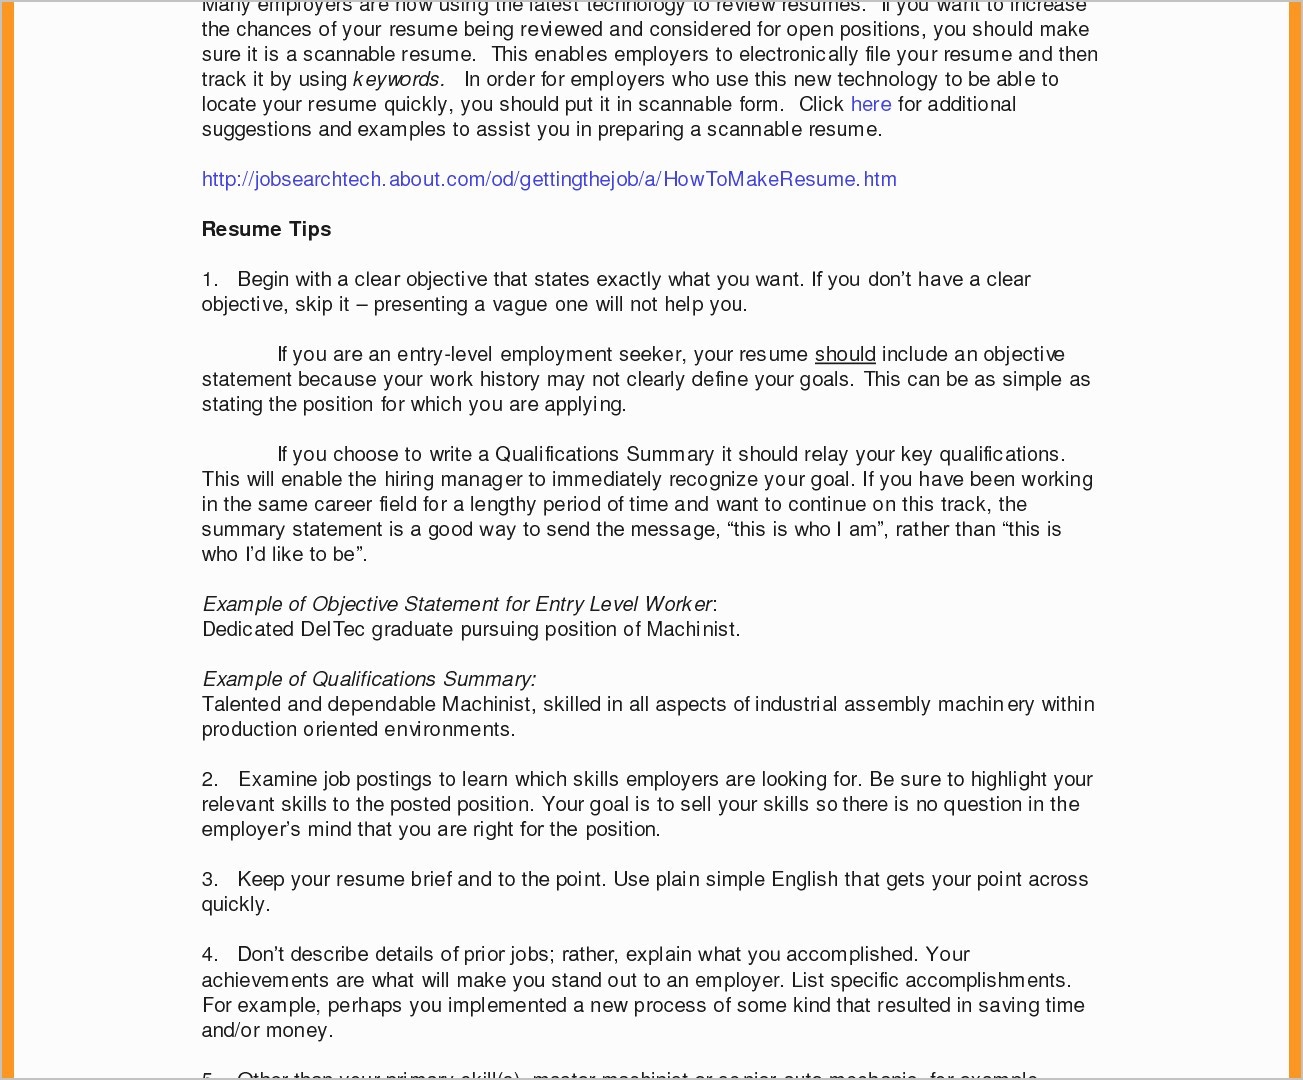 general labor resume template example-Luxurious General Labor Resume Examples 6-j